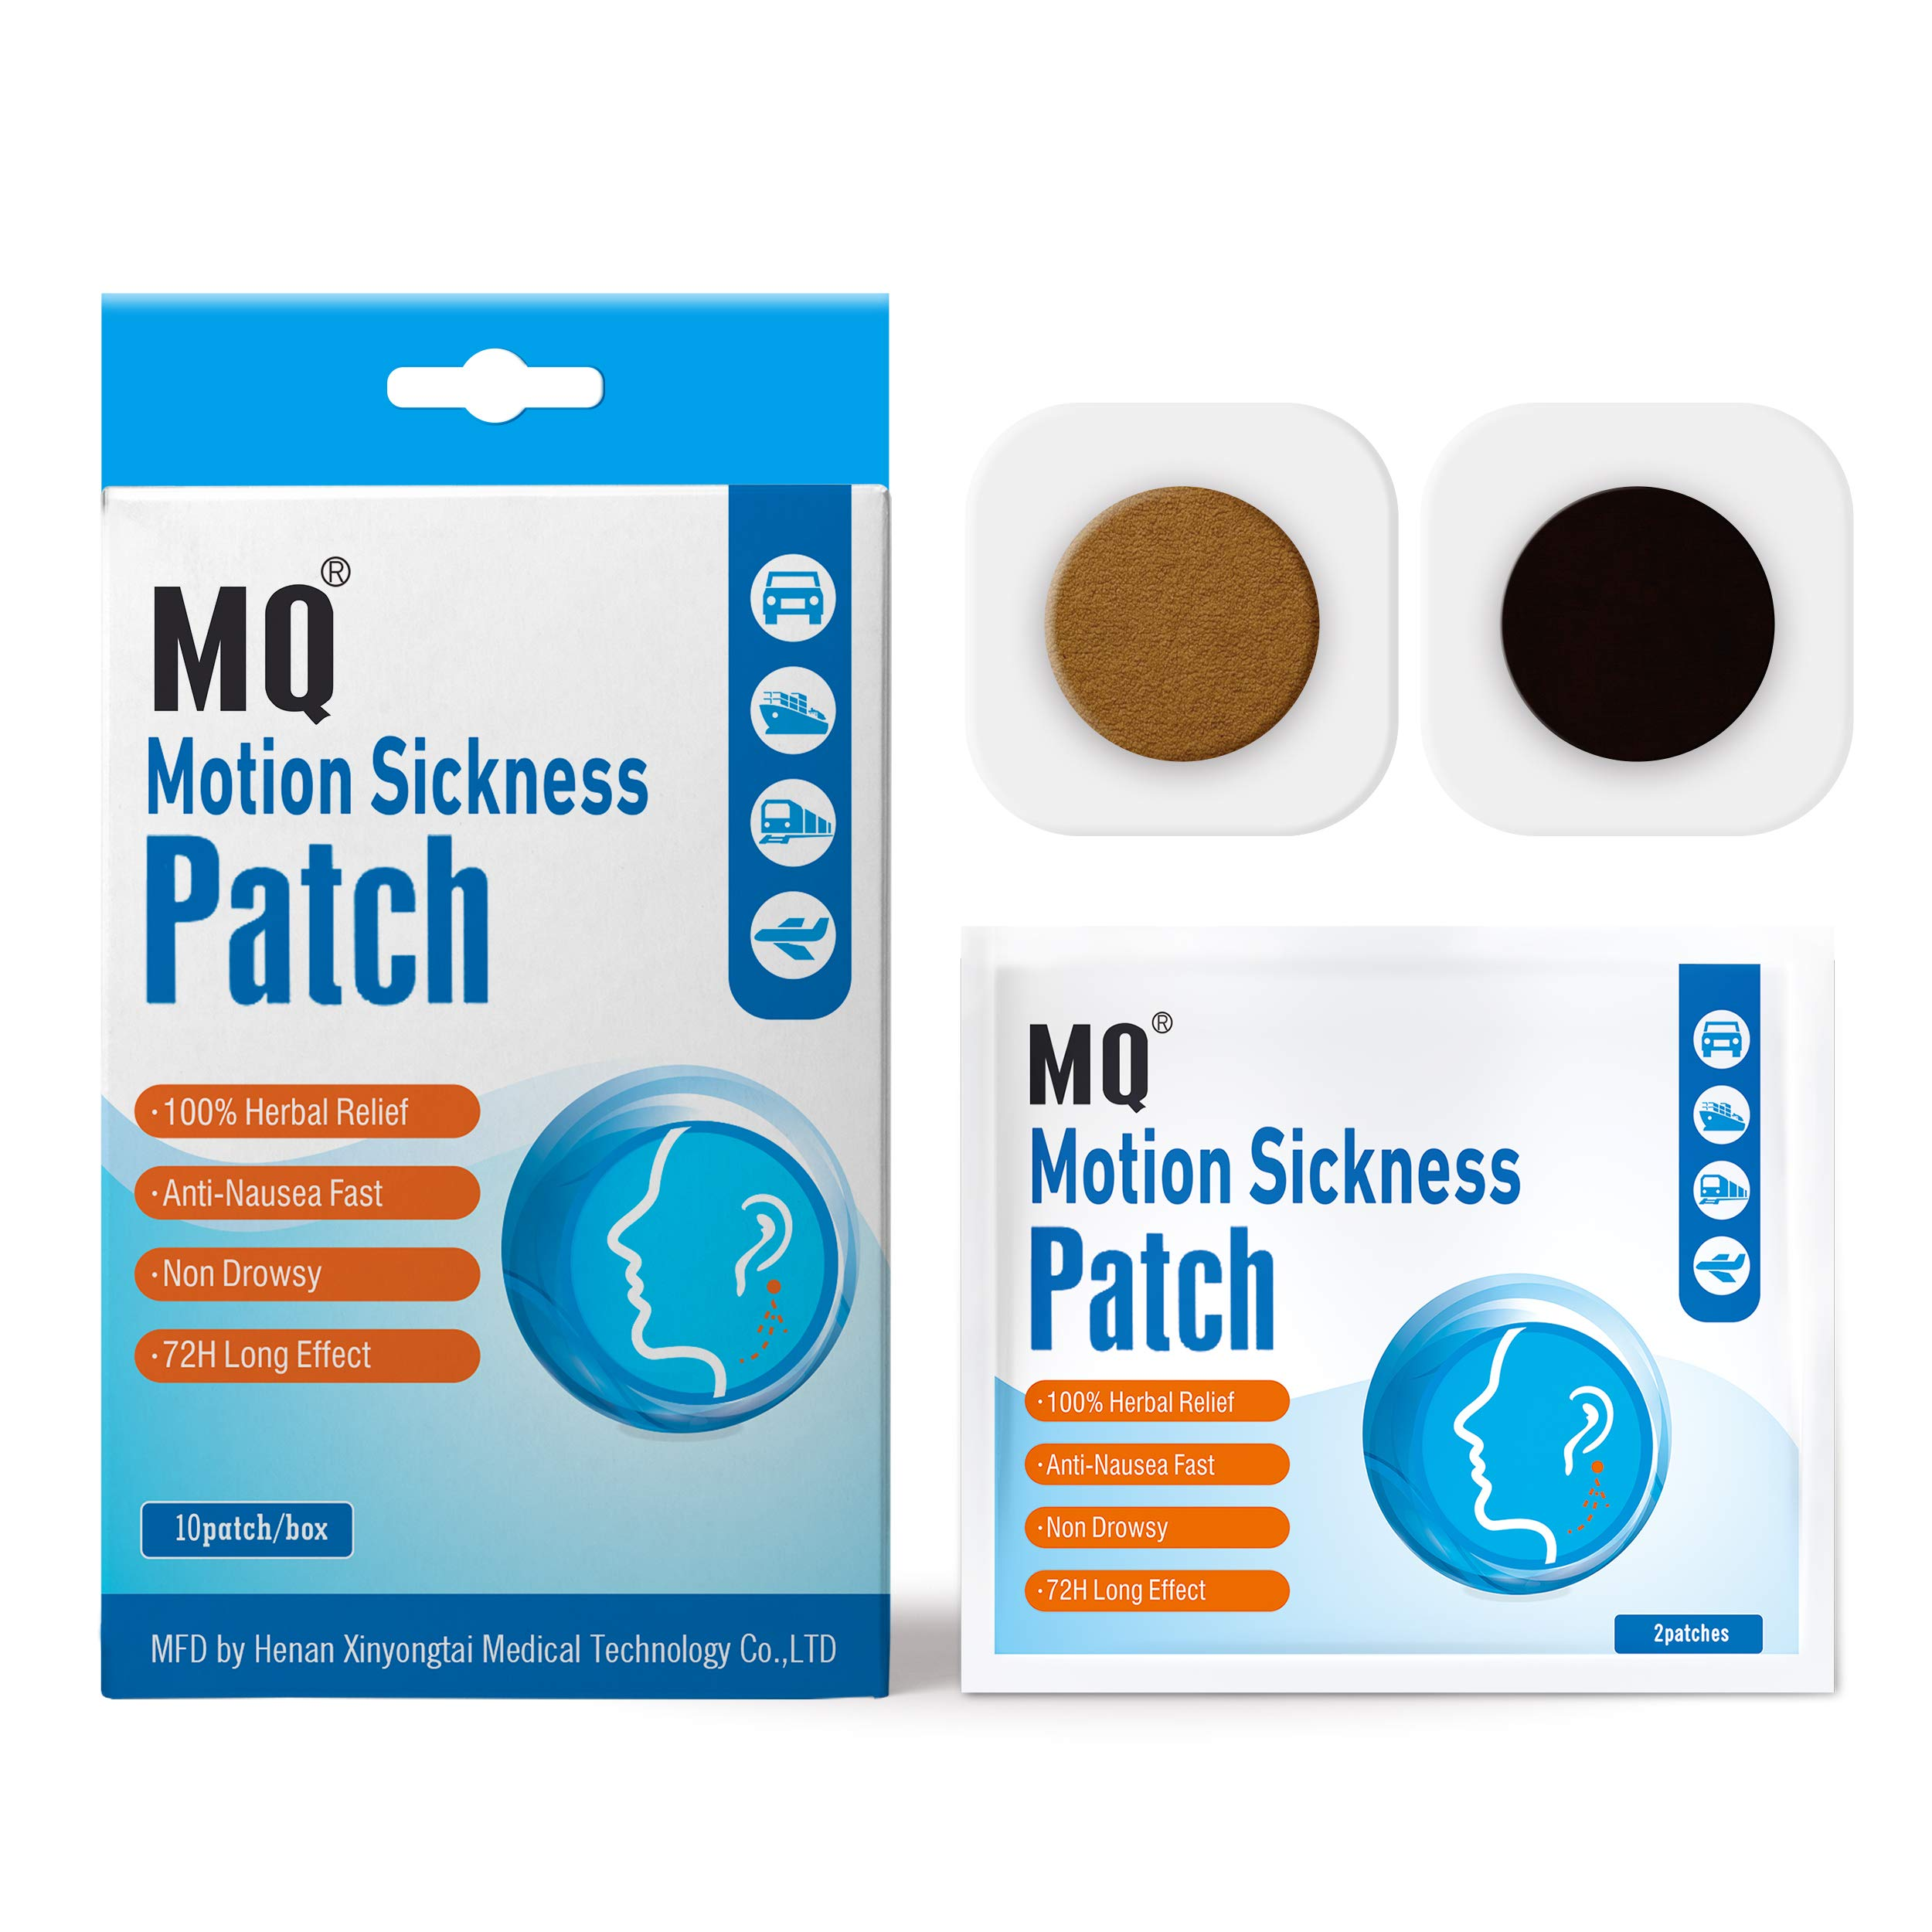 MQ Motion Sickness Patch (10 piece)